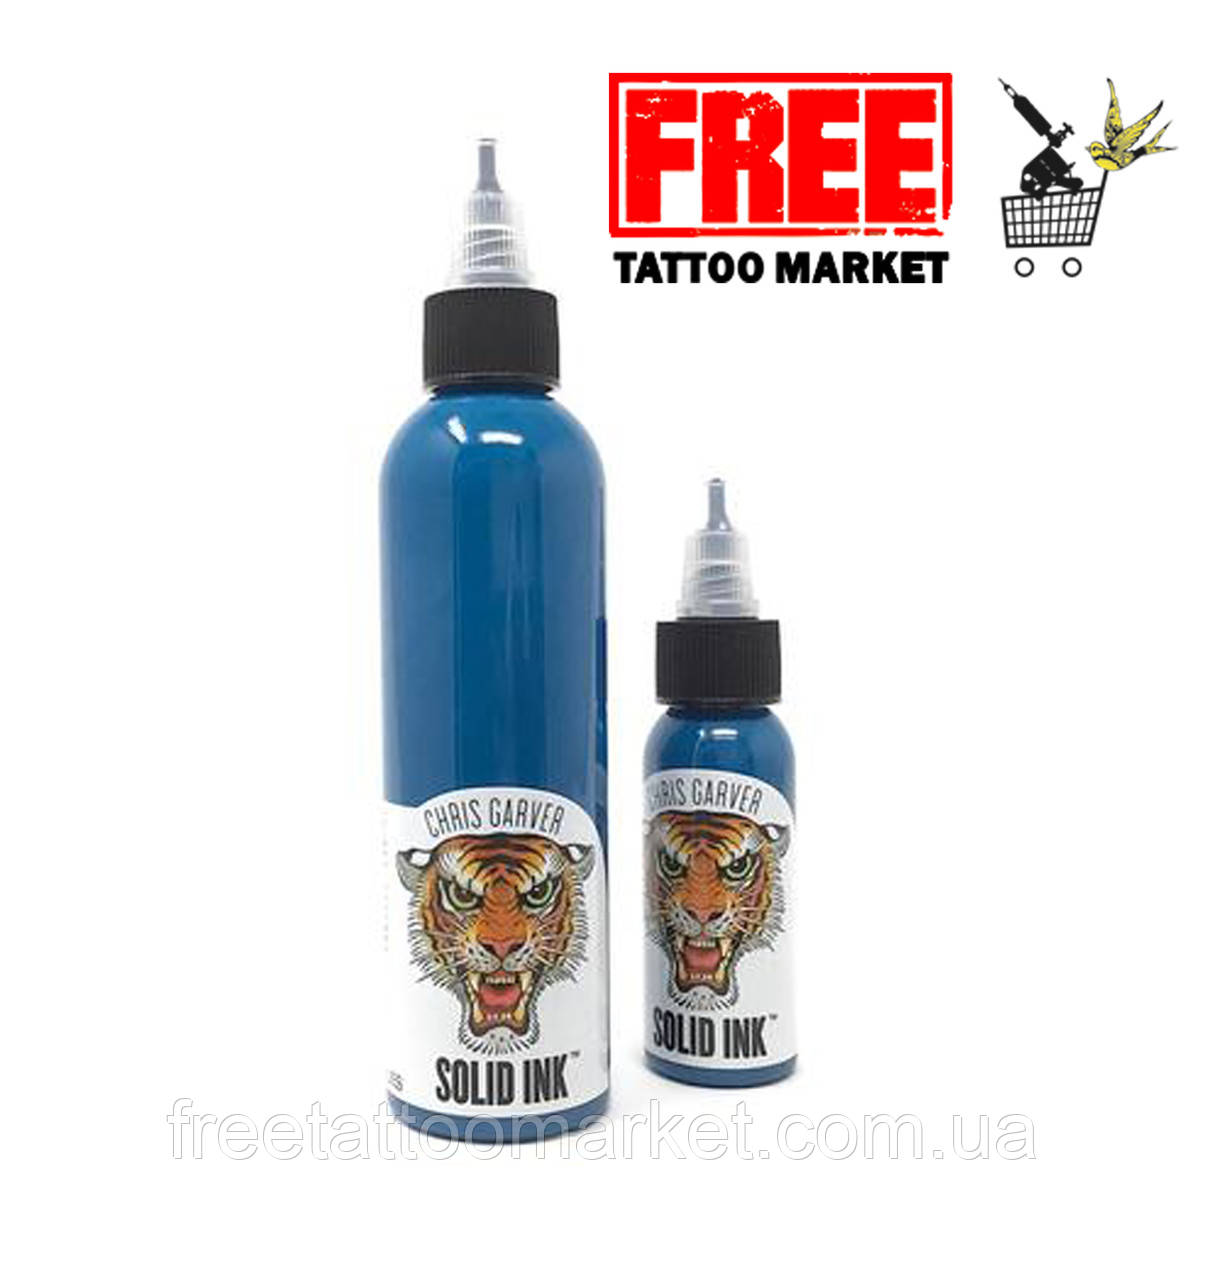 Тату краска SOLID INK GARVER MIKIRI BLUES 1 унц (30мл)